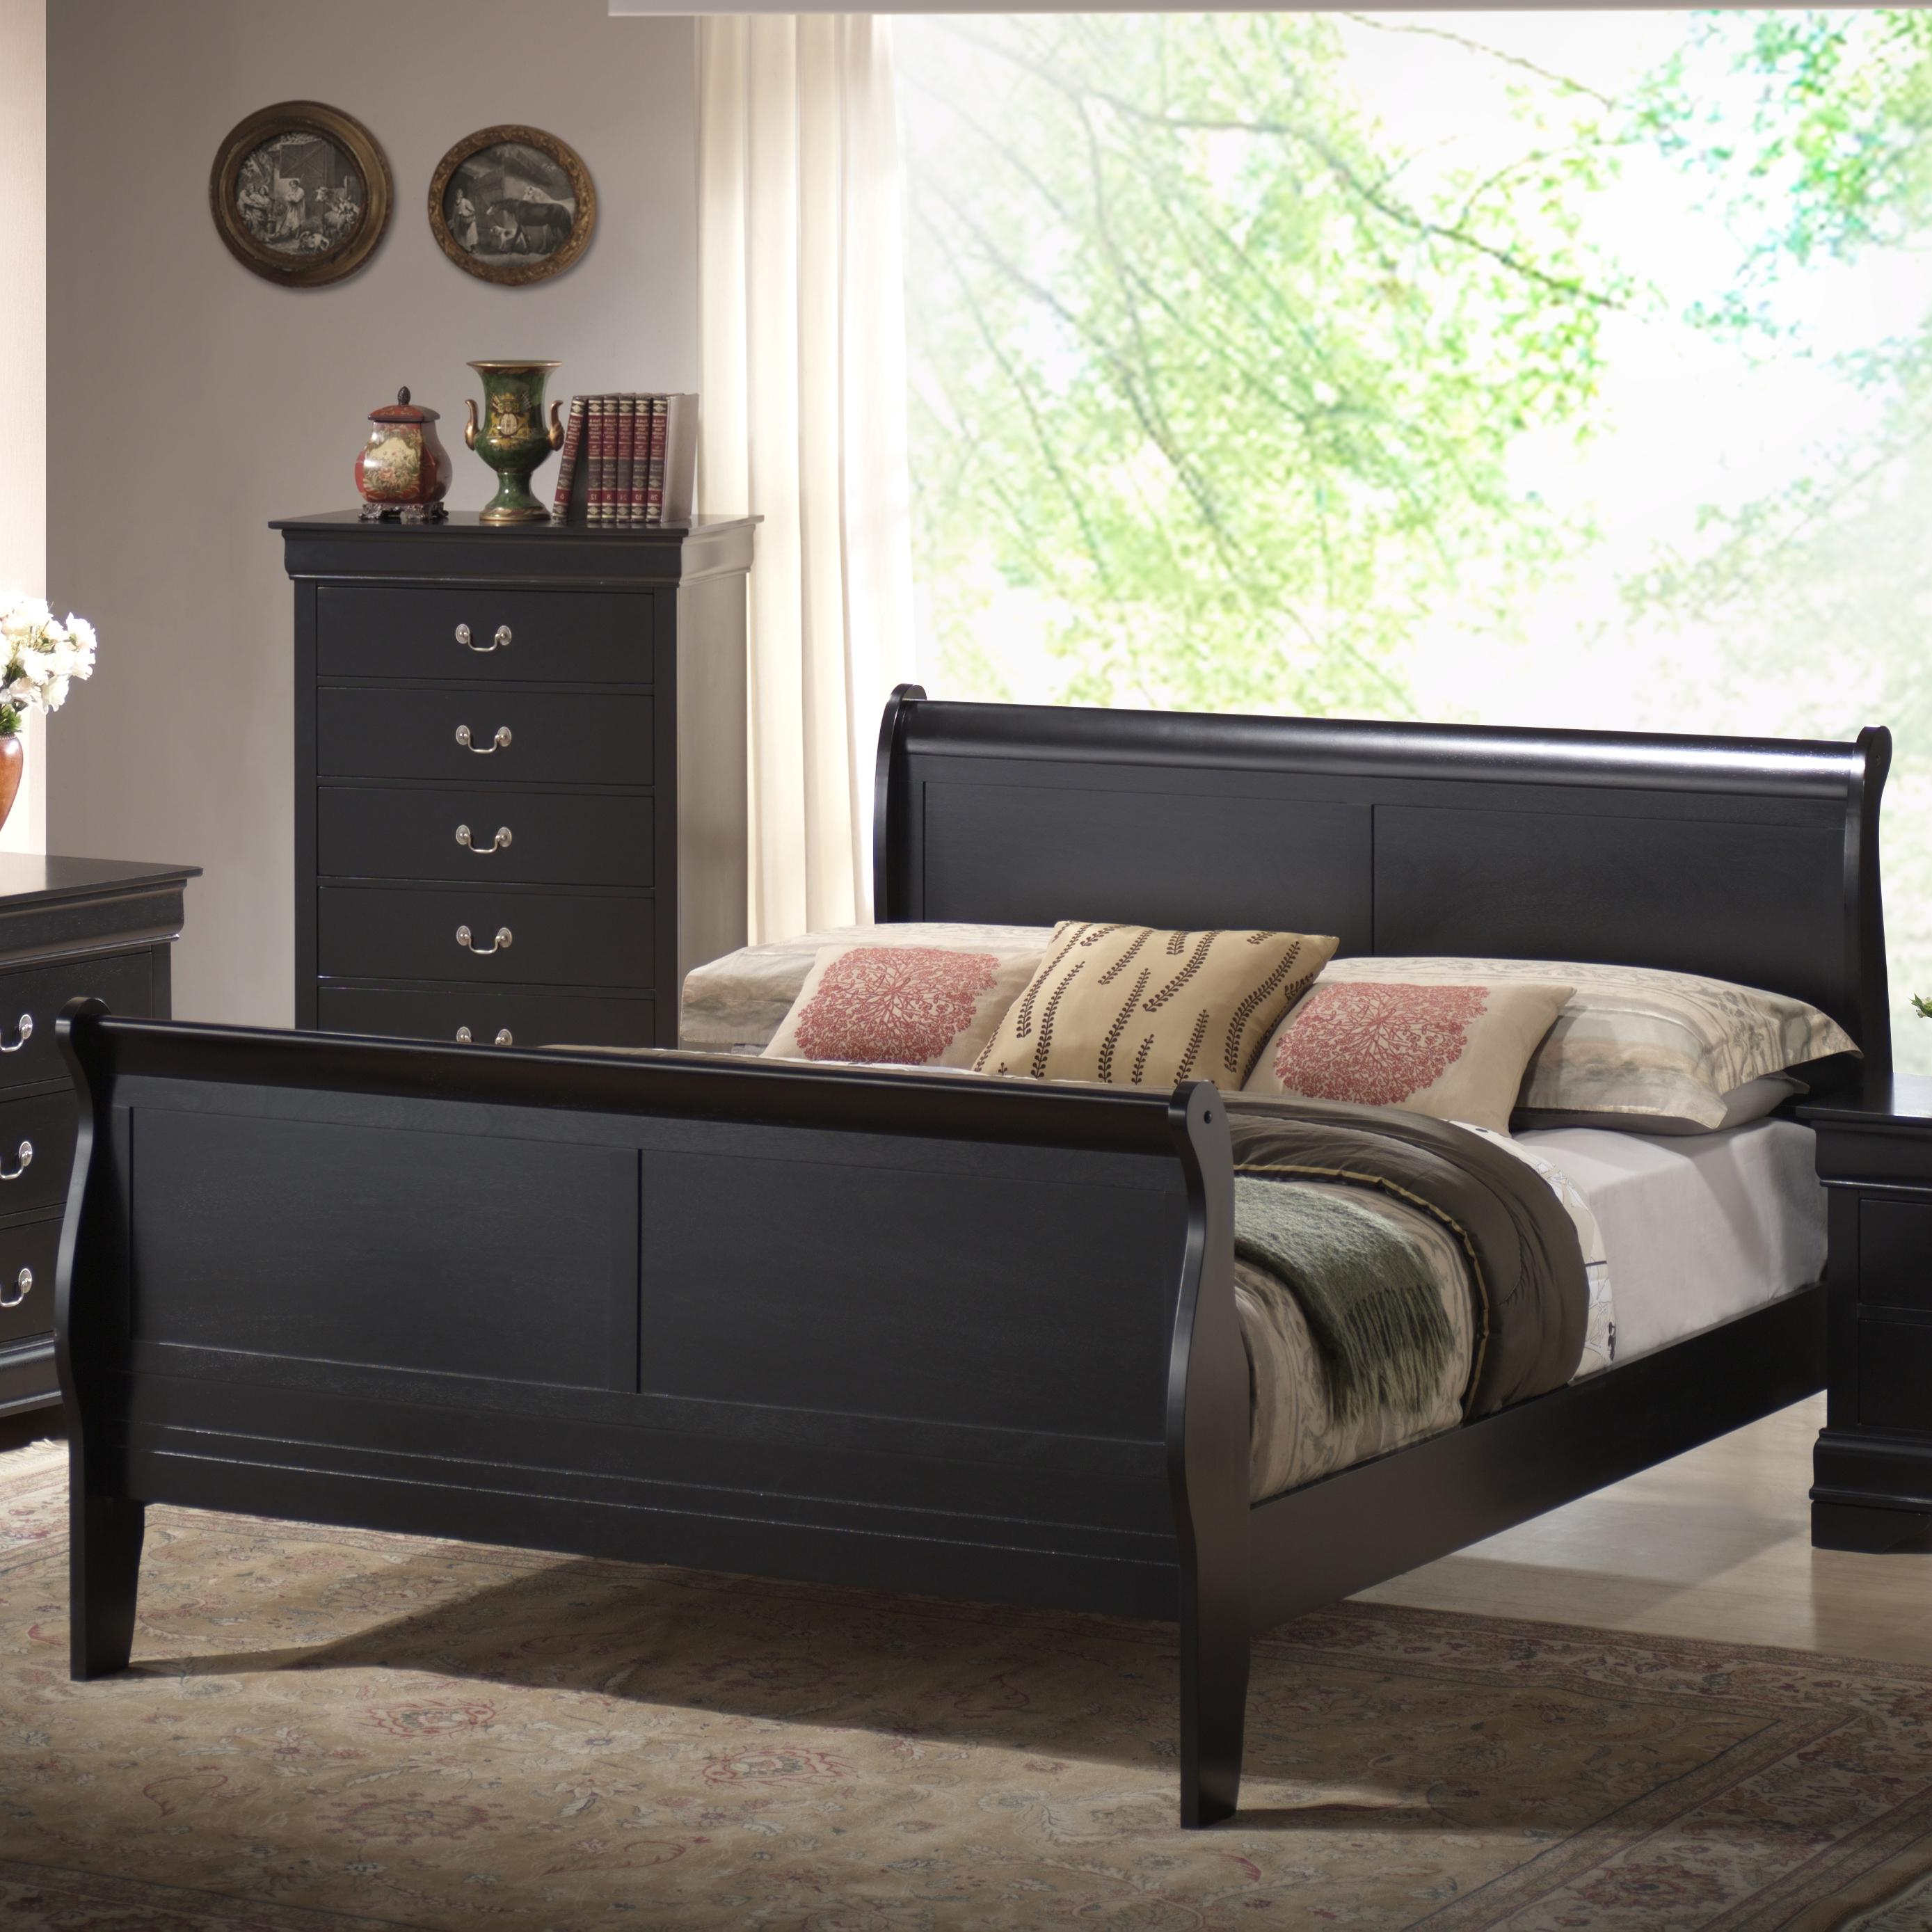 Lifestyle Louis Phillipe Queen Sleigh Bed - Item Number: C5934A-QSA-XXBL+QXP-XXBL